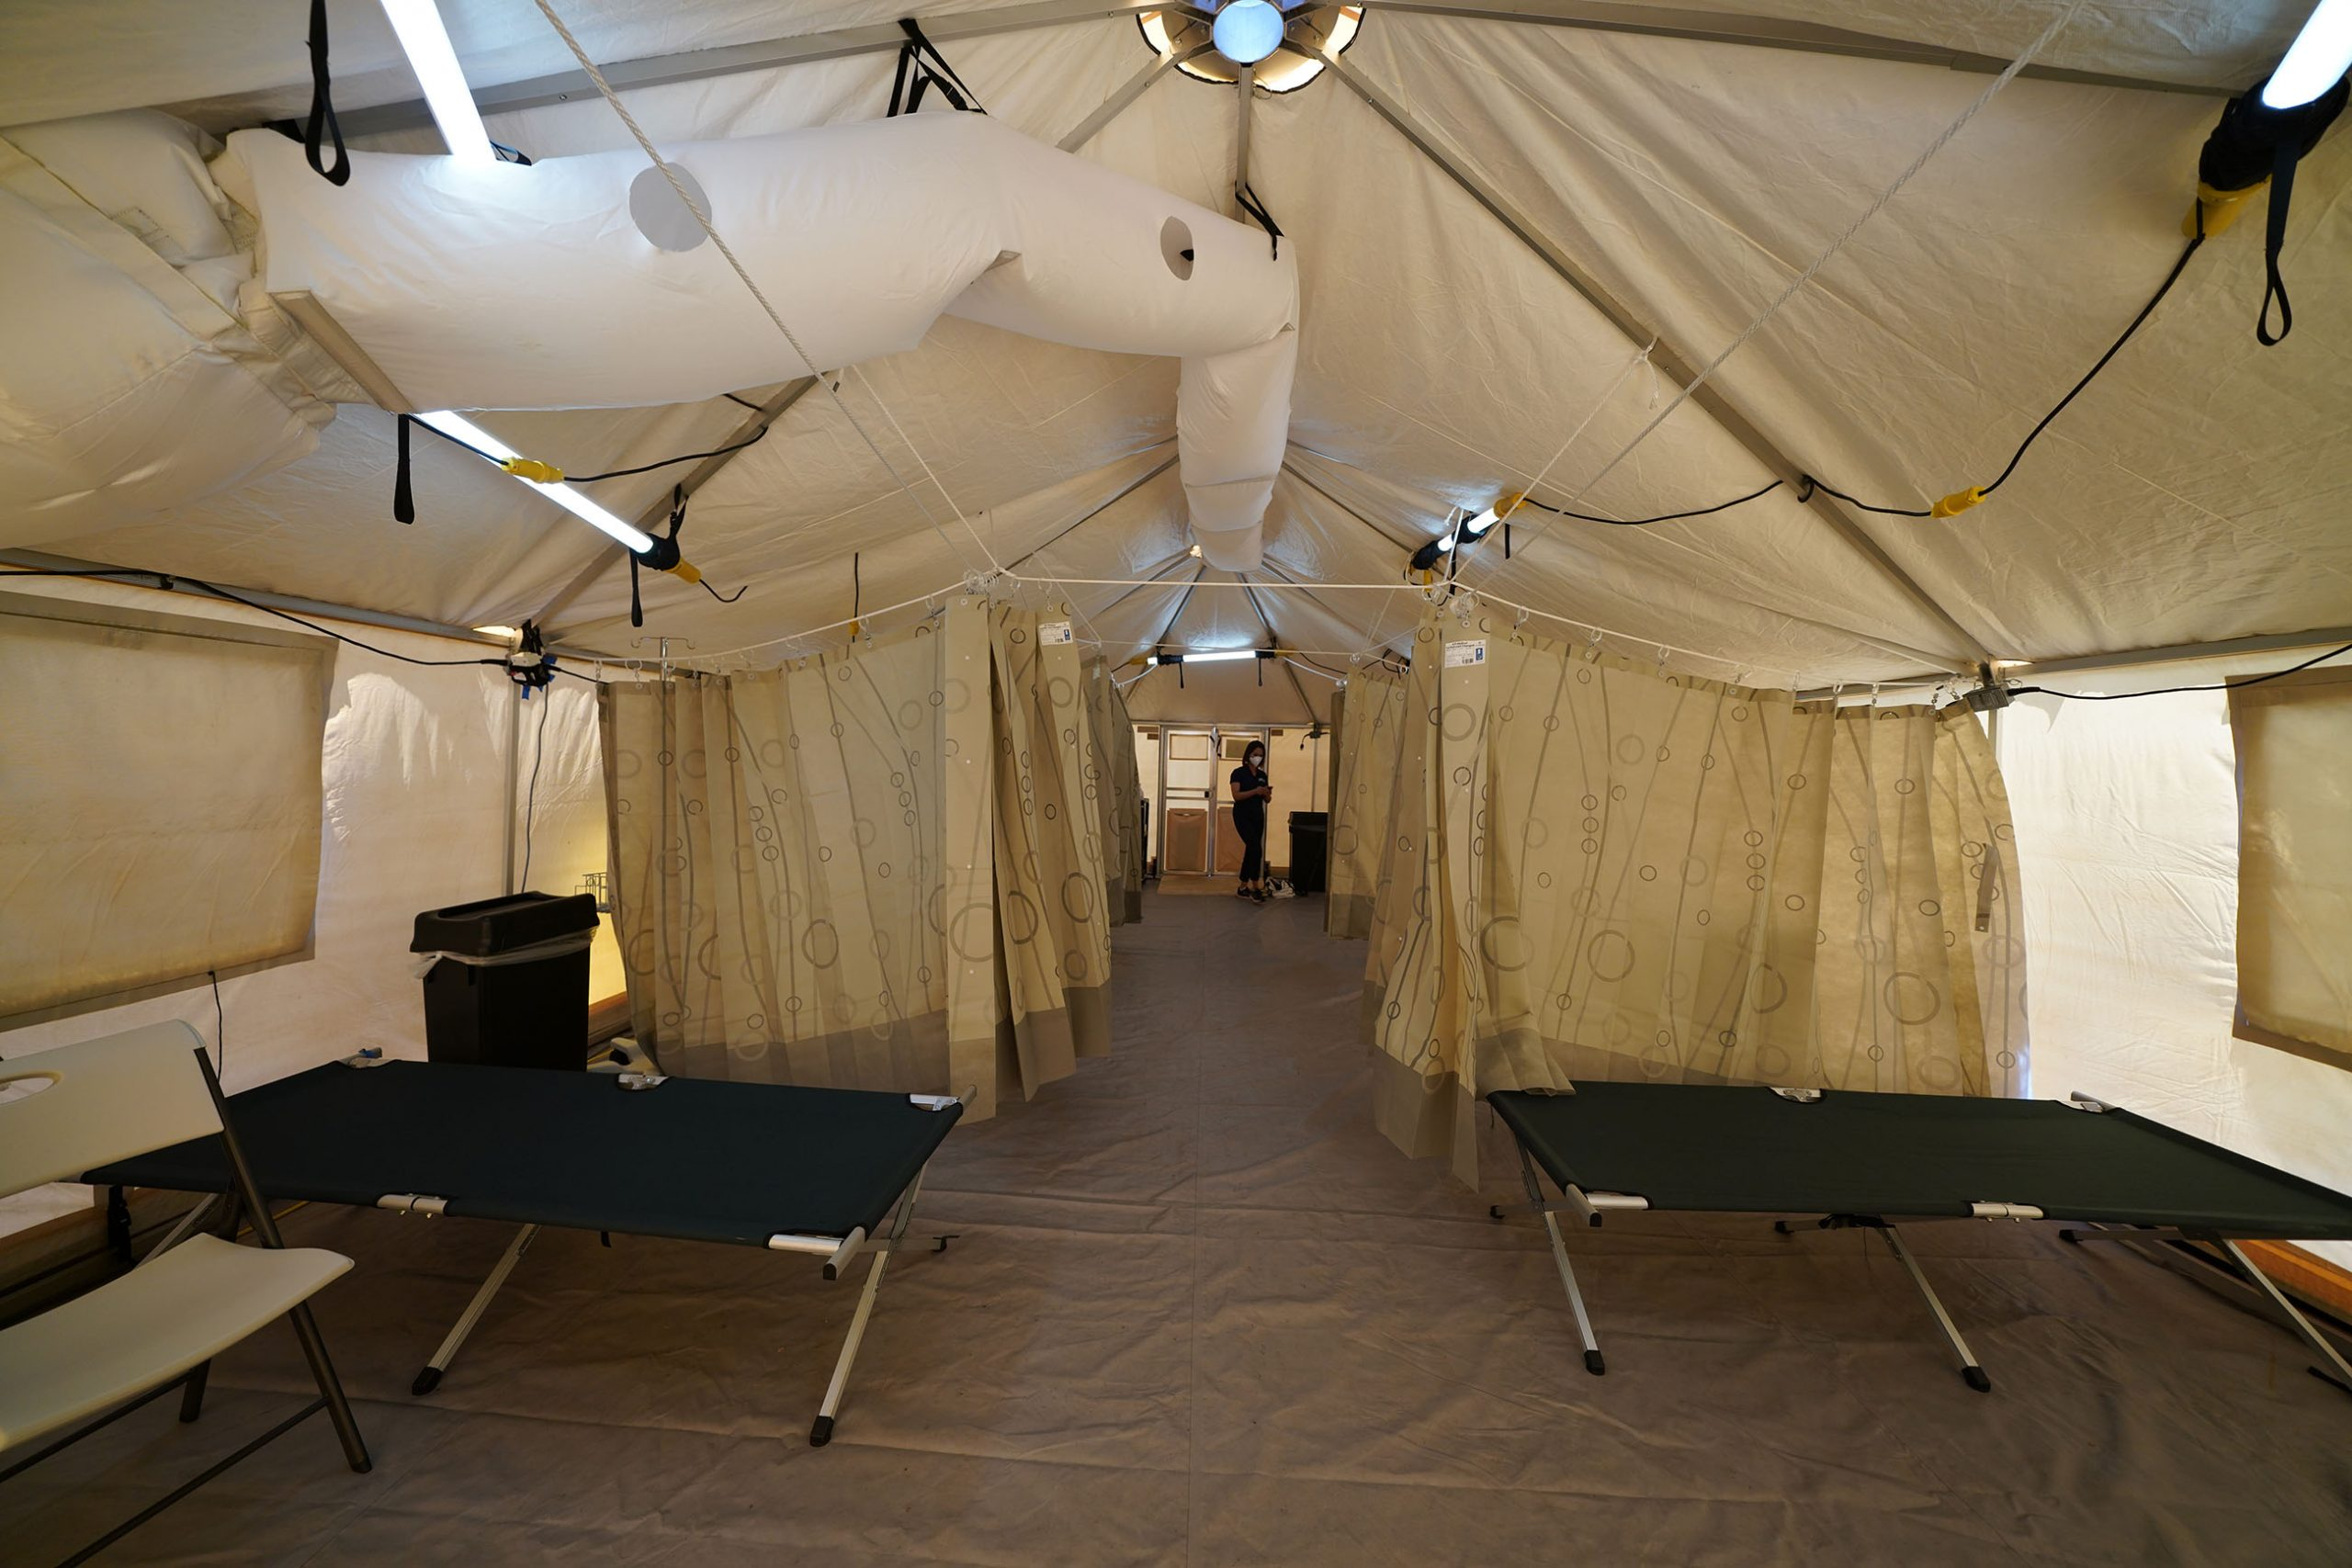 Inside view of Straub Medical Center's tent outside the Emergency room during Covid-19 surge.